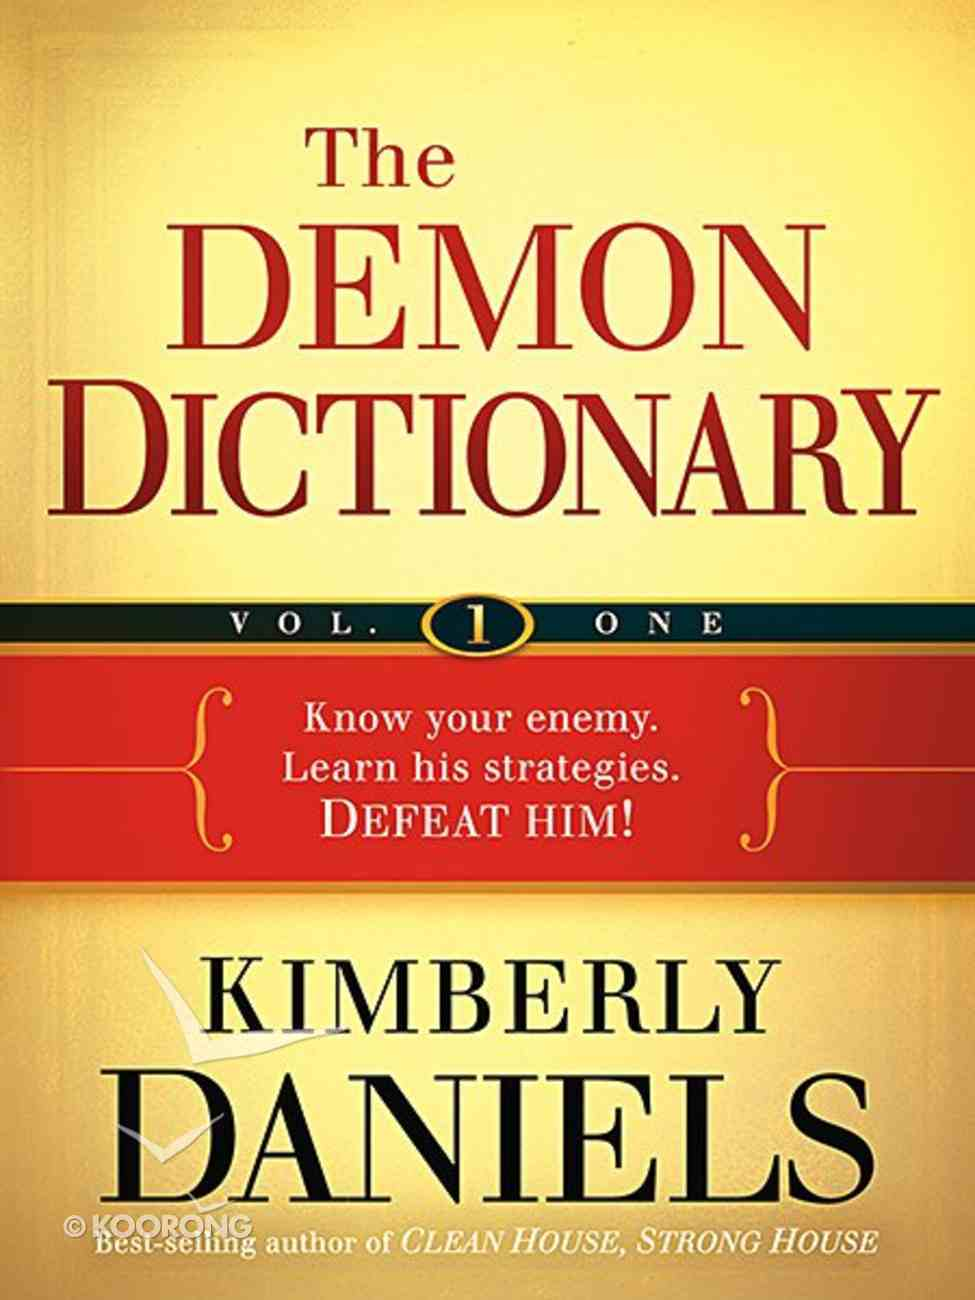 The Demon Dictionary (Volume One) Paperback